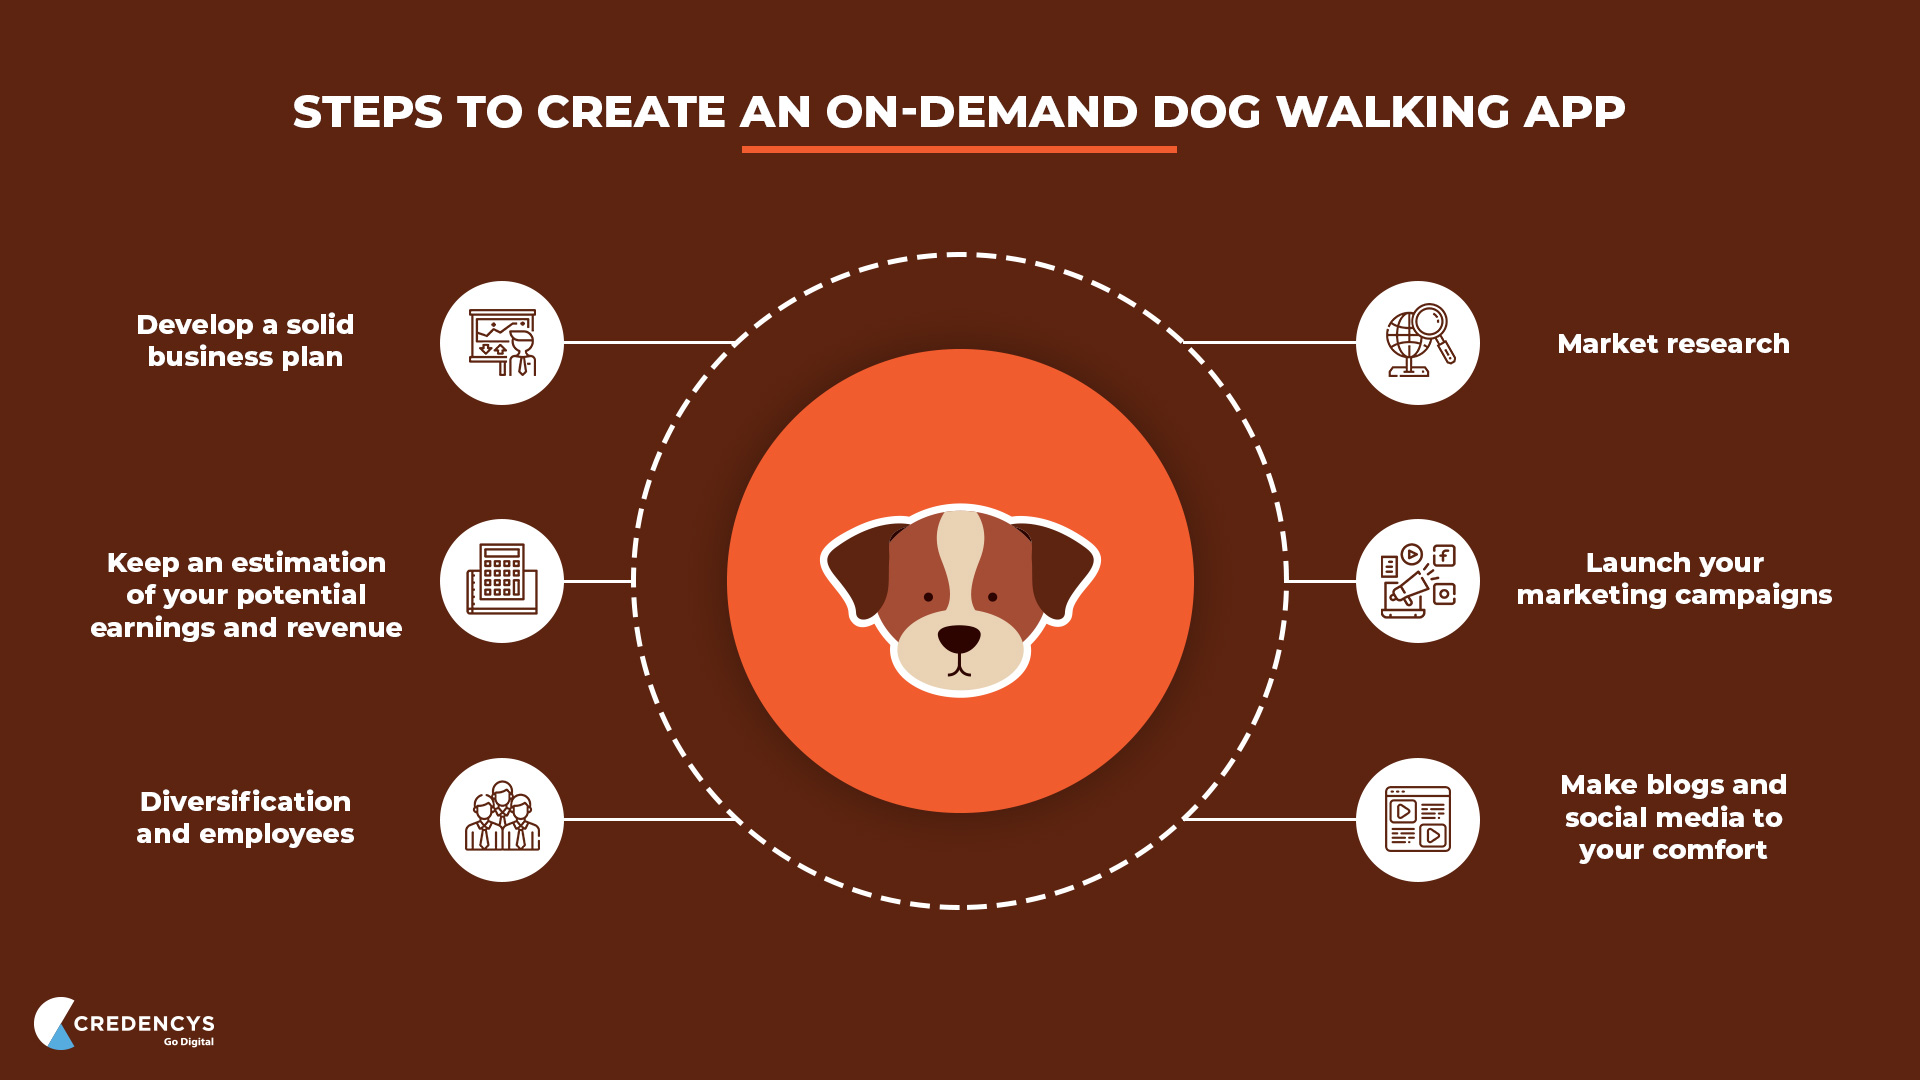 How to Create An On-demand Dog Walking App